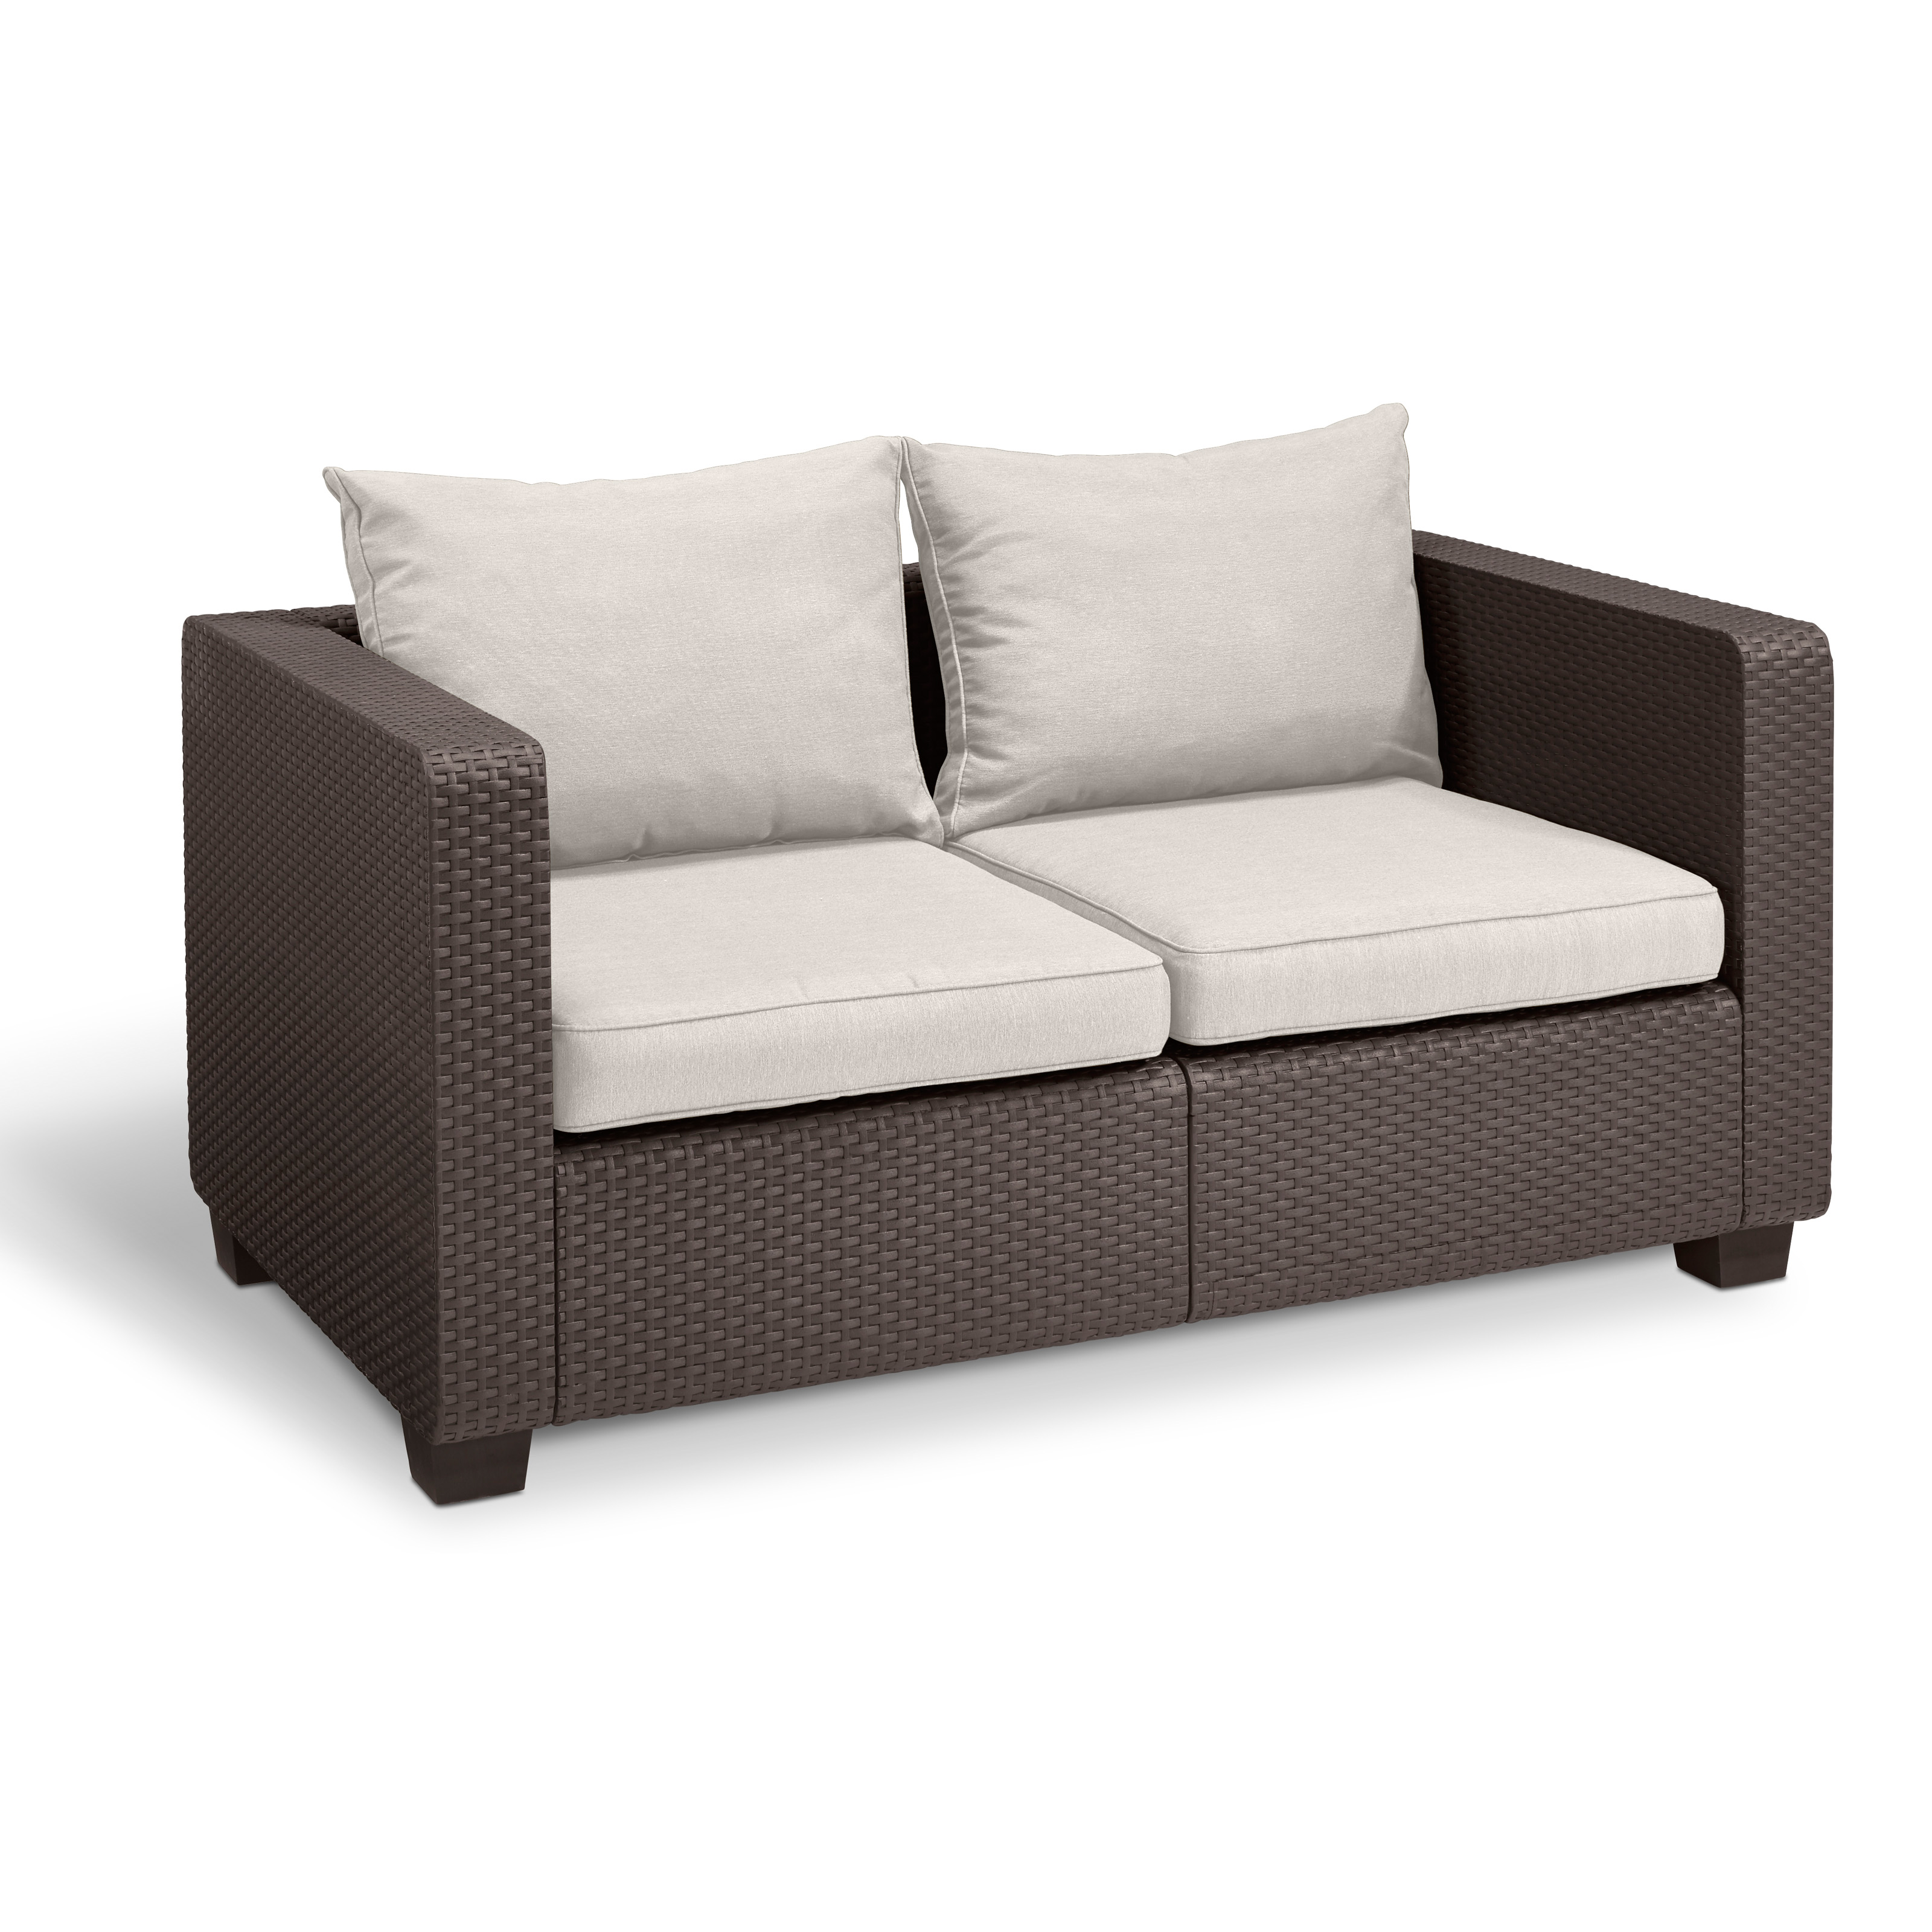 Keter Salta Wicker Patio Loveseat With Sunbrella Cushions